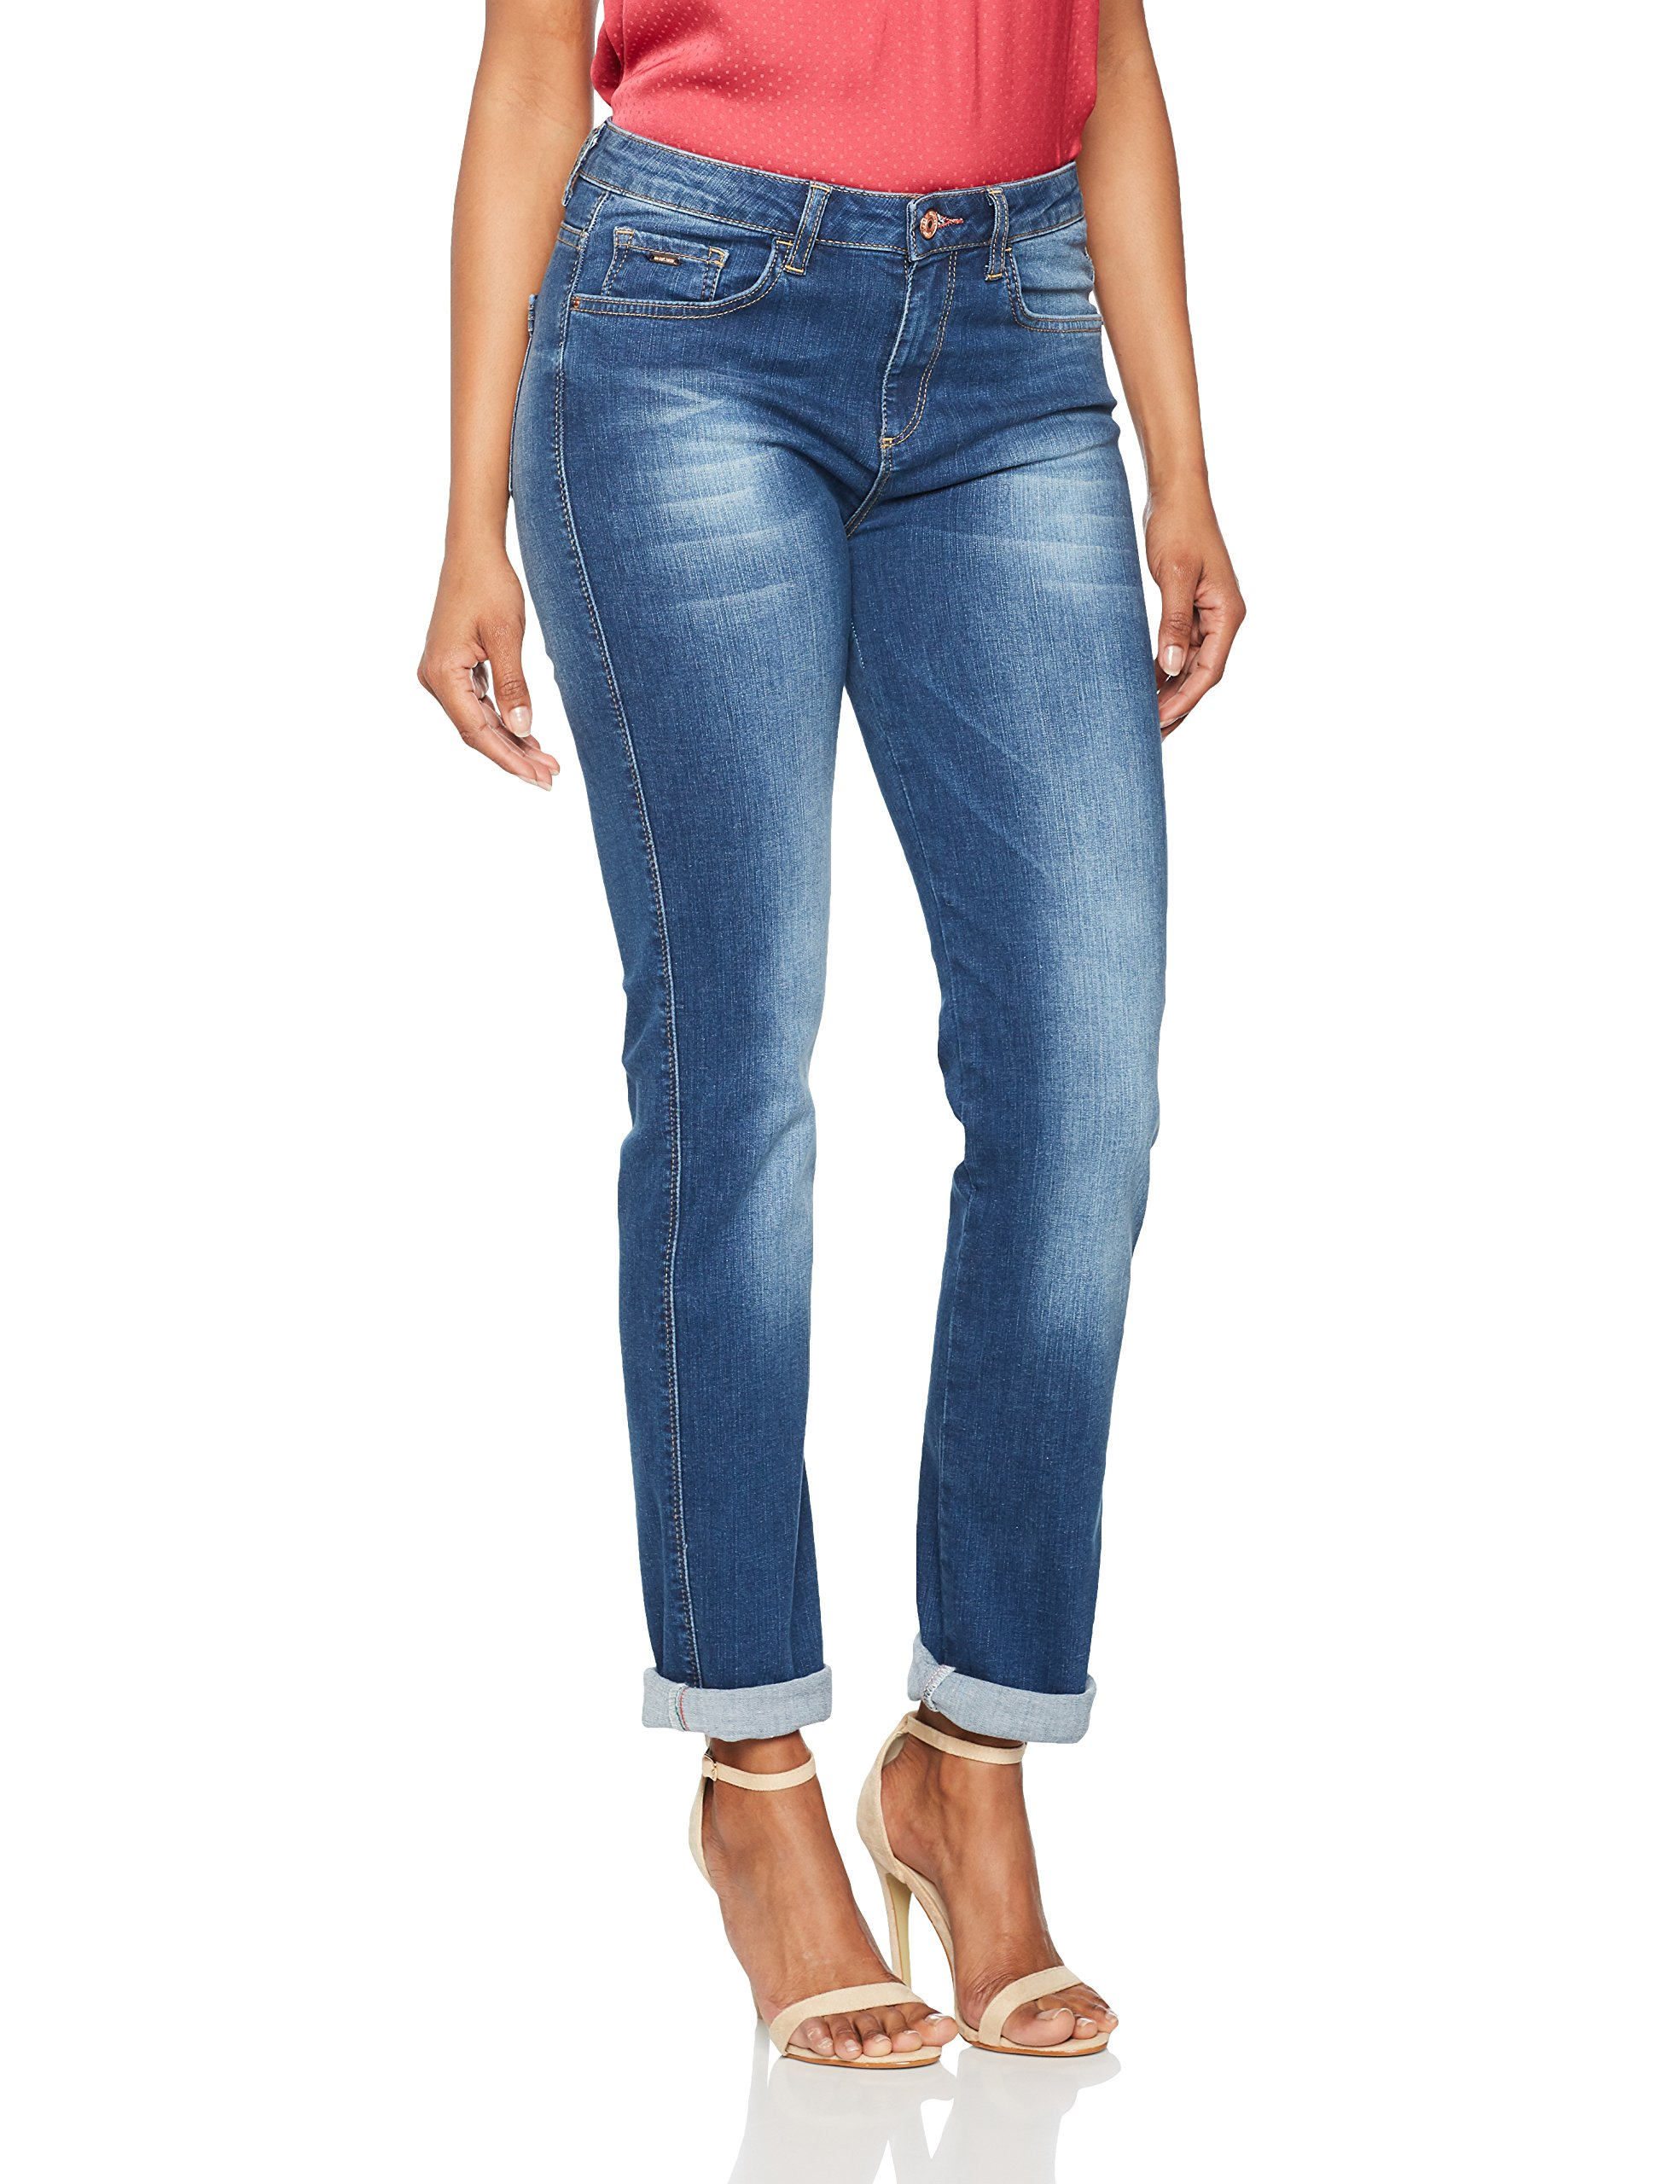 Fabricant 38 Wash 938229w 33ltaille SlimBleuadvanced X Blue Jean His Marylin 33Femme Medium tQshrd